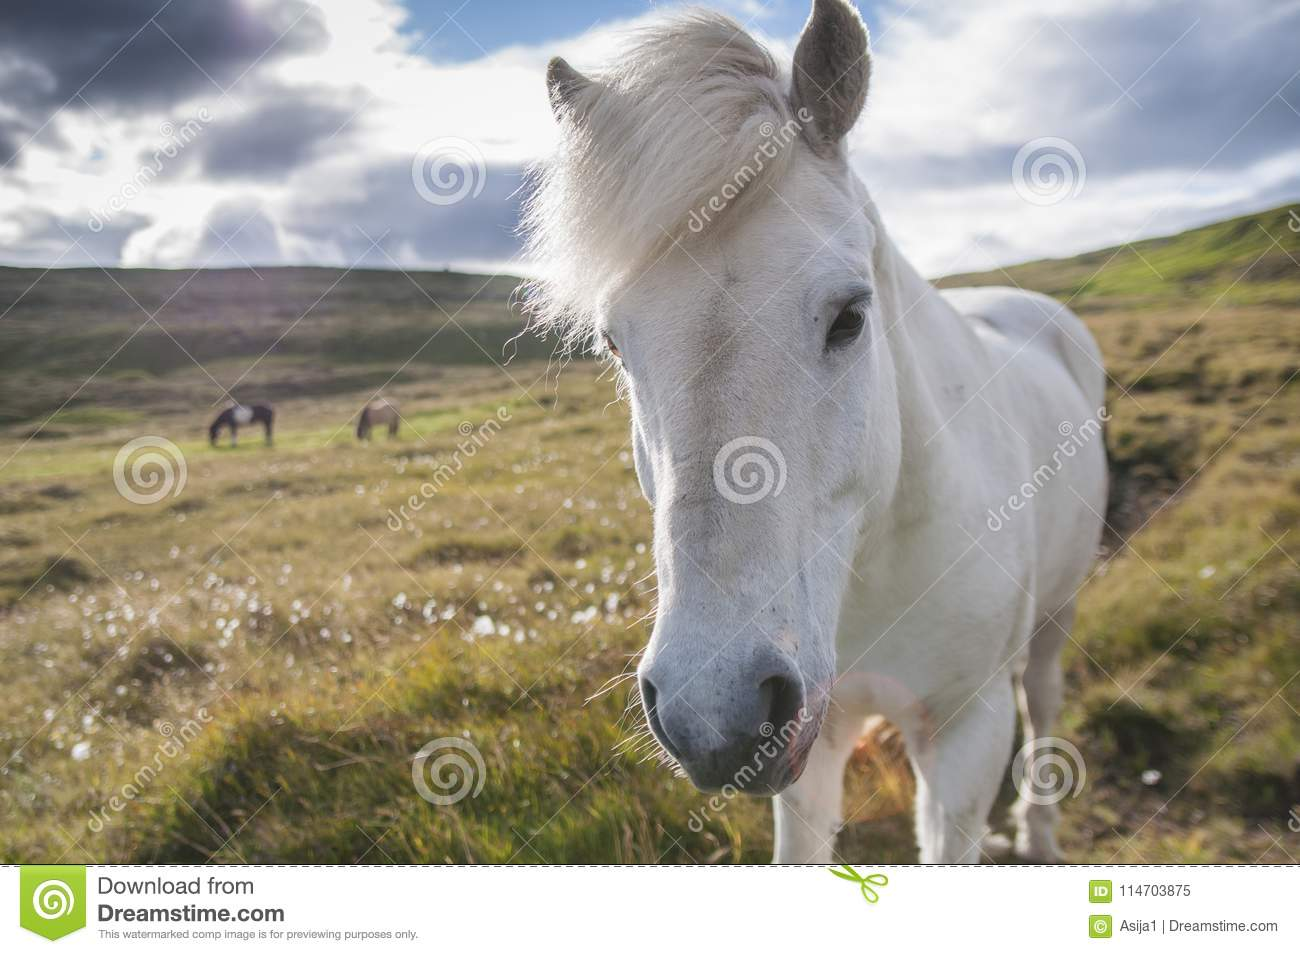 Royalty Free Horse On Hind Legs Pictures, Images and Stock ... |White Horse Standing Up